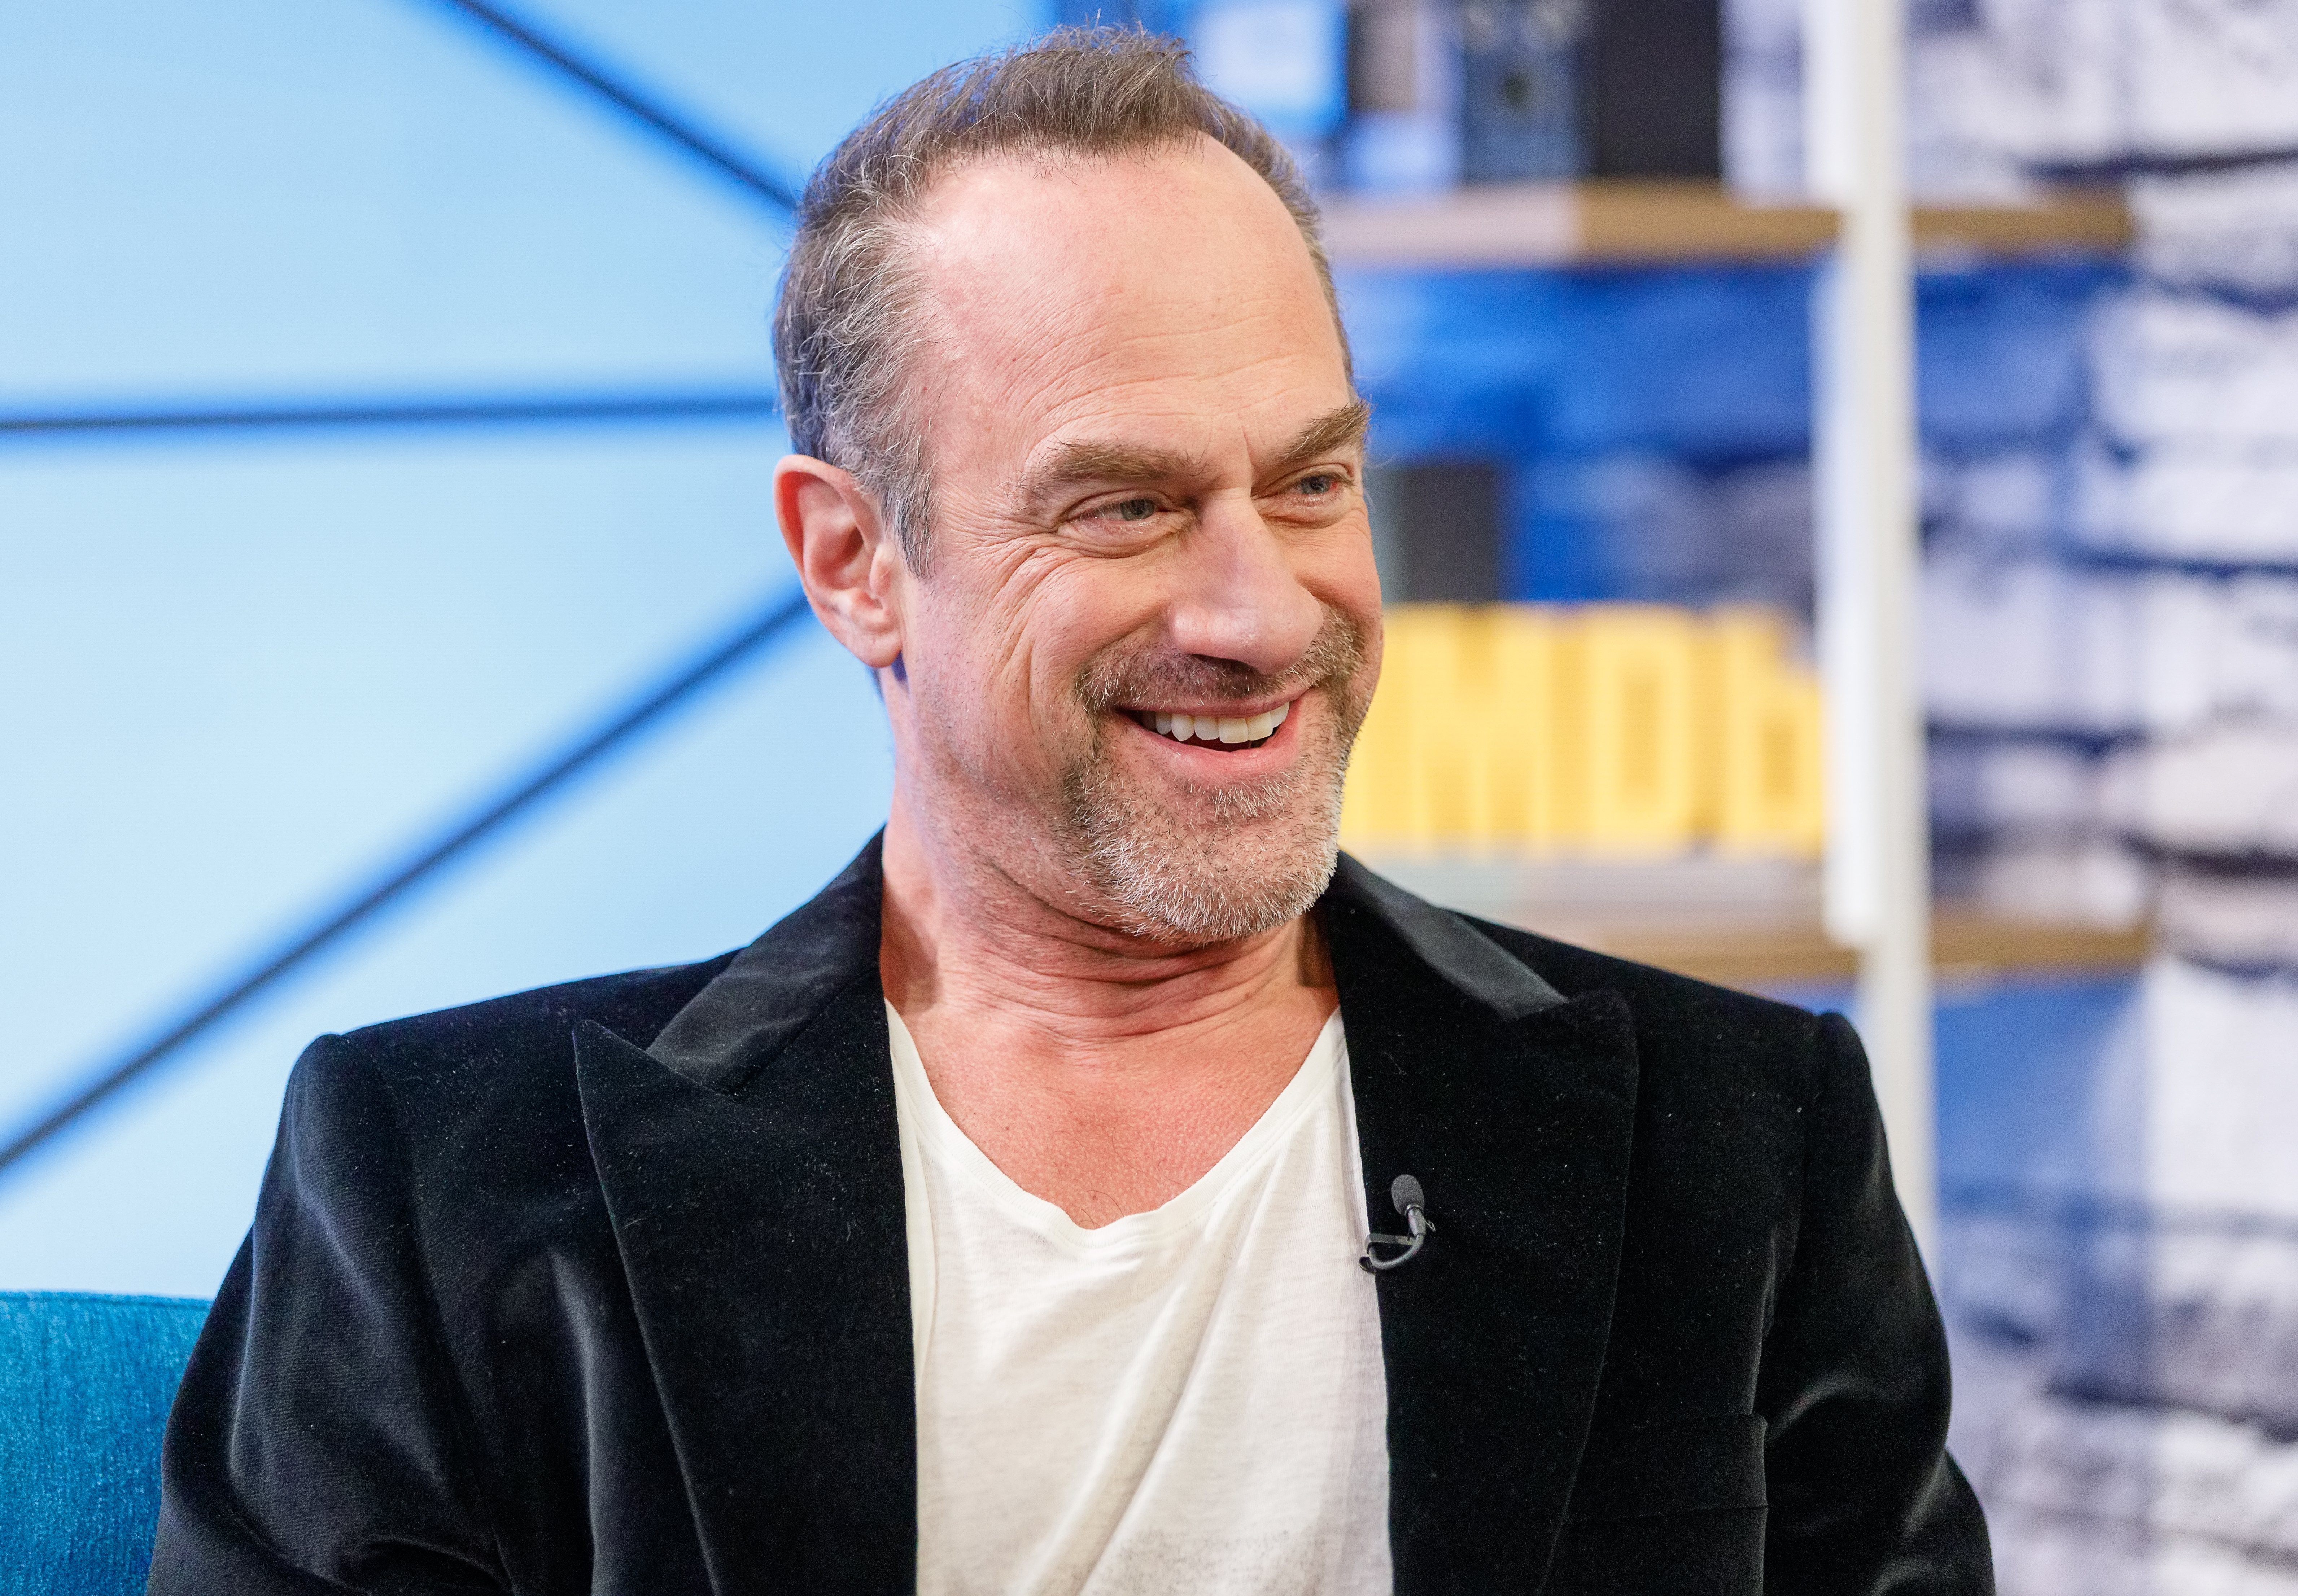 Christopher Meloni visits 'The IMDb Show' on March 26, 2019 in Studio City, California | Photo: Getty Images